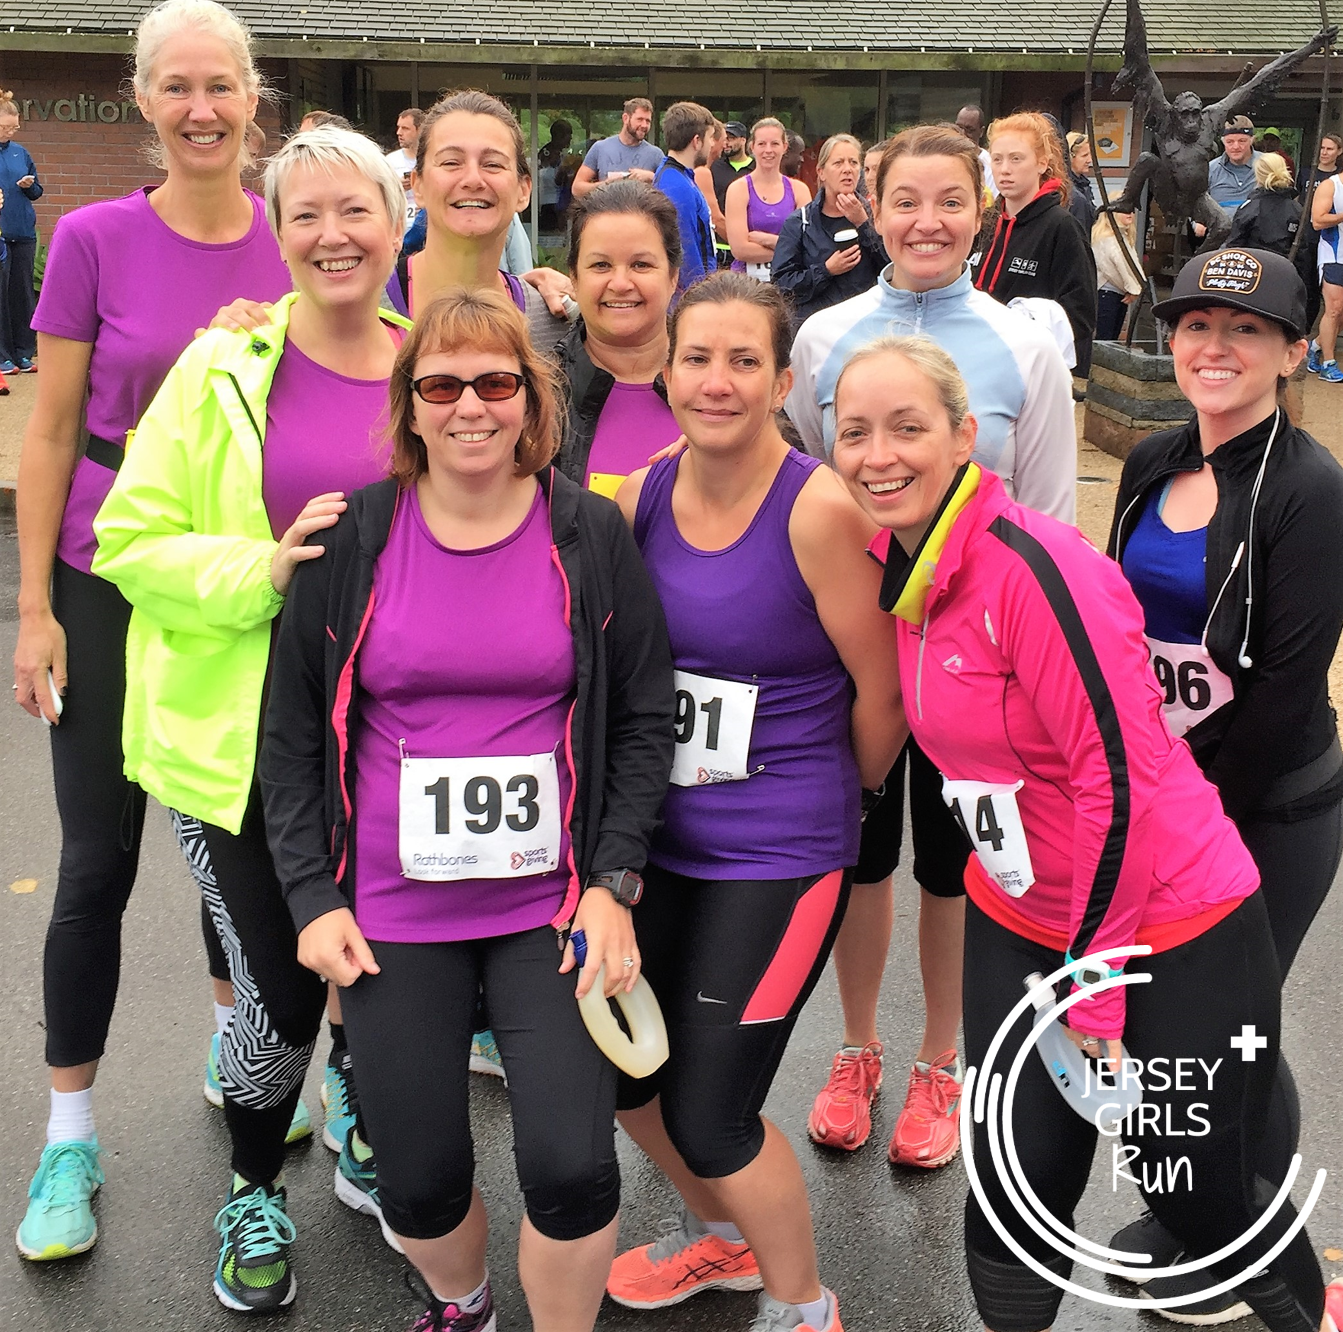 16 OCTOBER 2016 - JERSEY GIRLS Dash for Durrell - We had a good turnout for the Durrell Dash with some ladies taking on 6k and other opting for the challenging 13k.  Both distances had hill after hill but the girls attacked the course with smiles and ditermination.